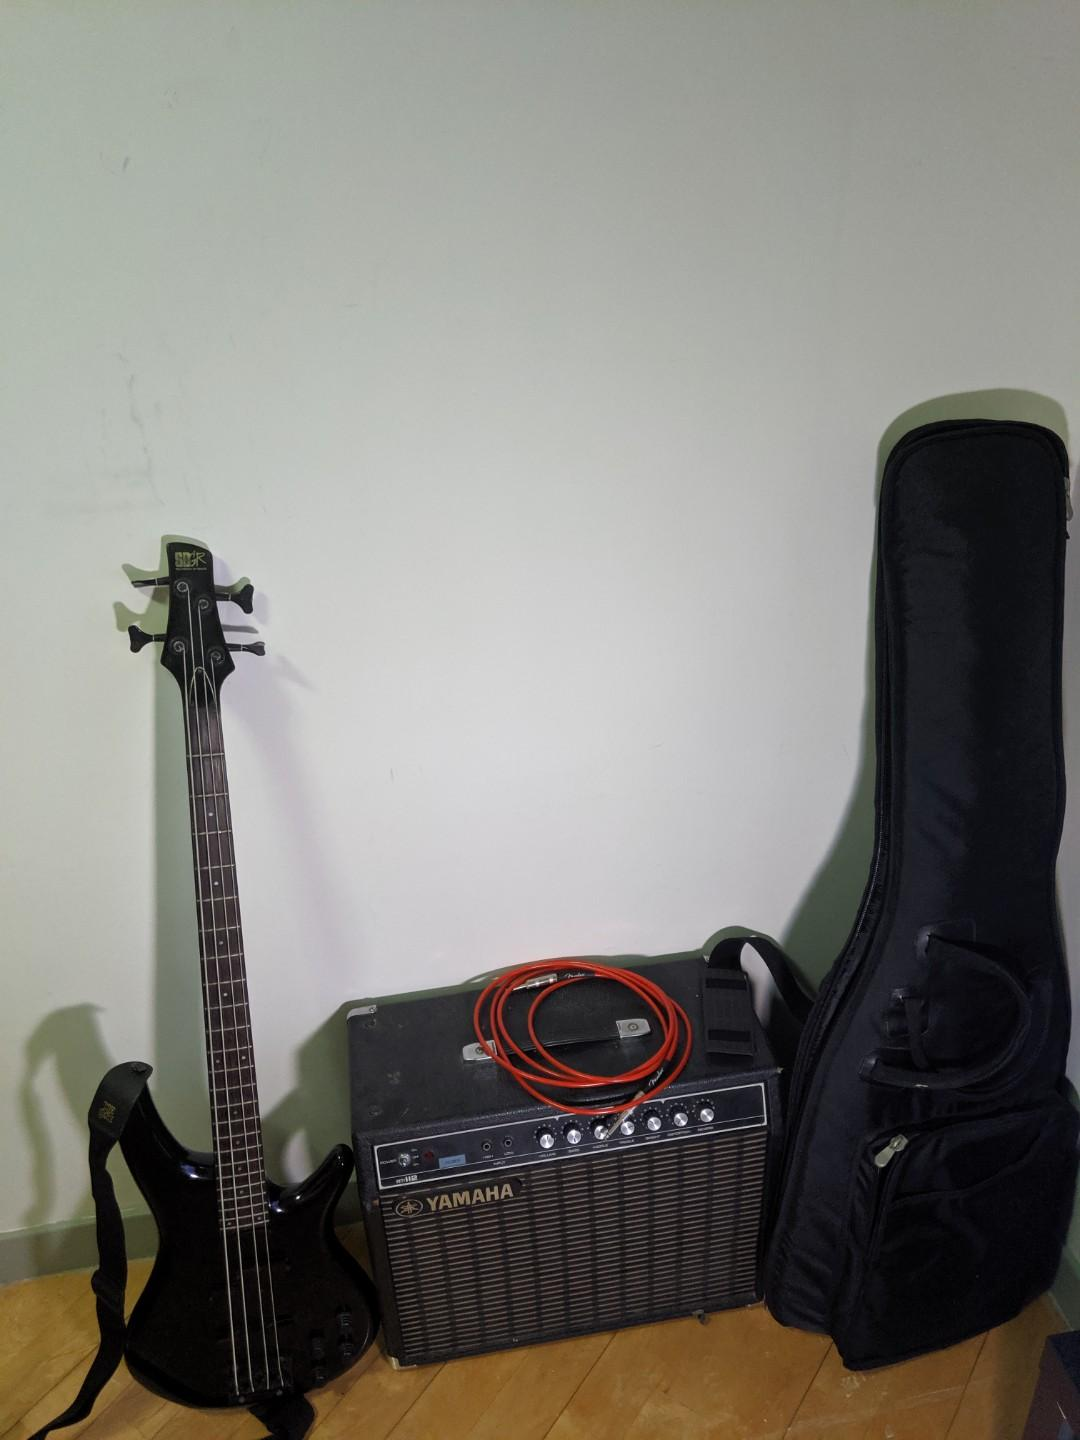 Ibanez Bass Guitar and Yamaha Amplifier